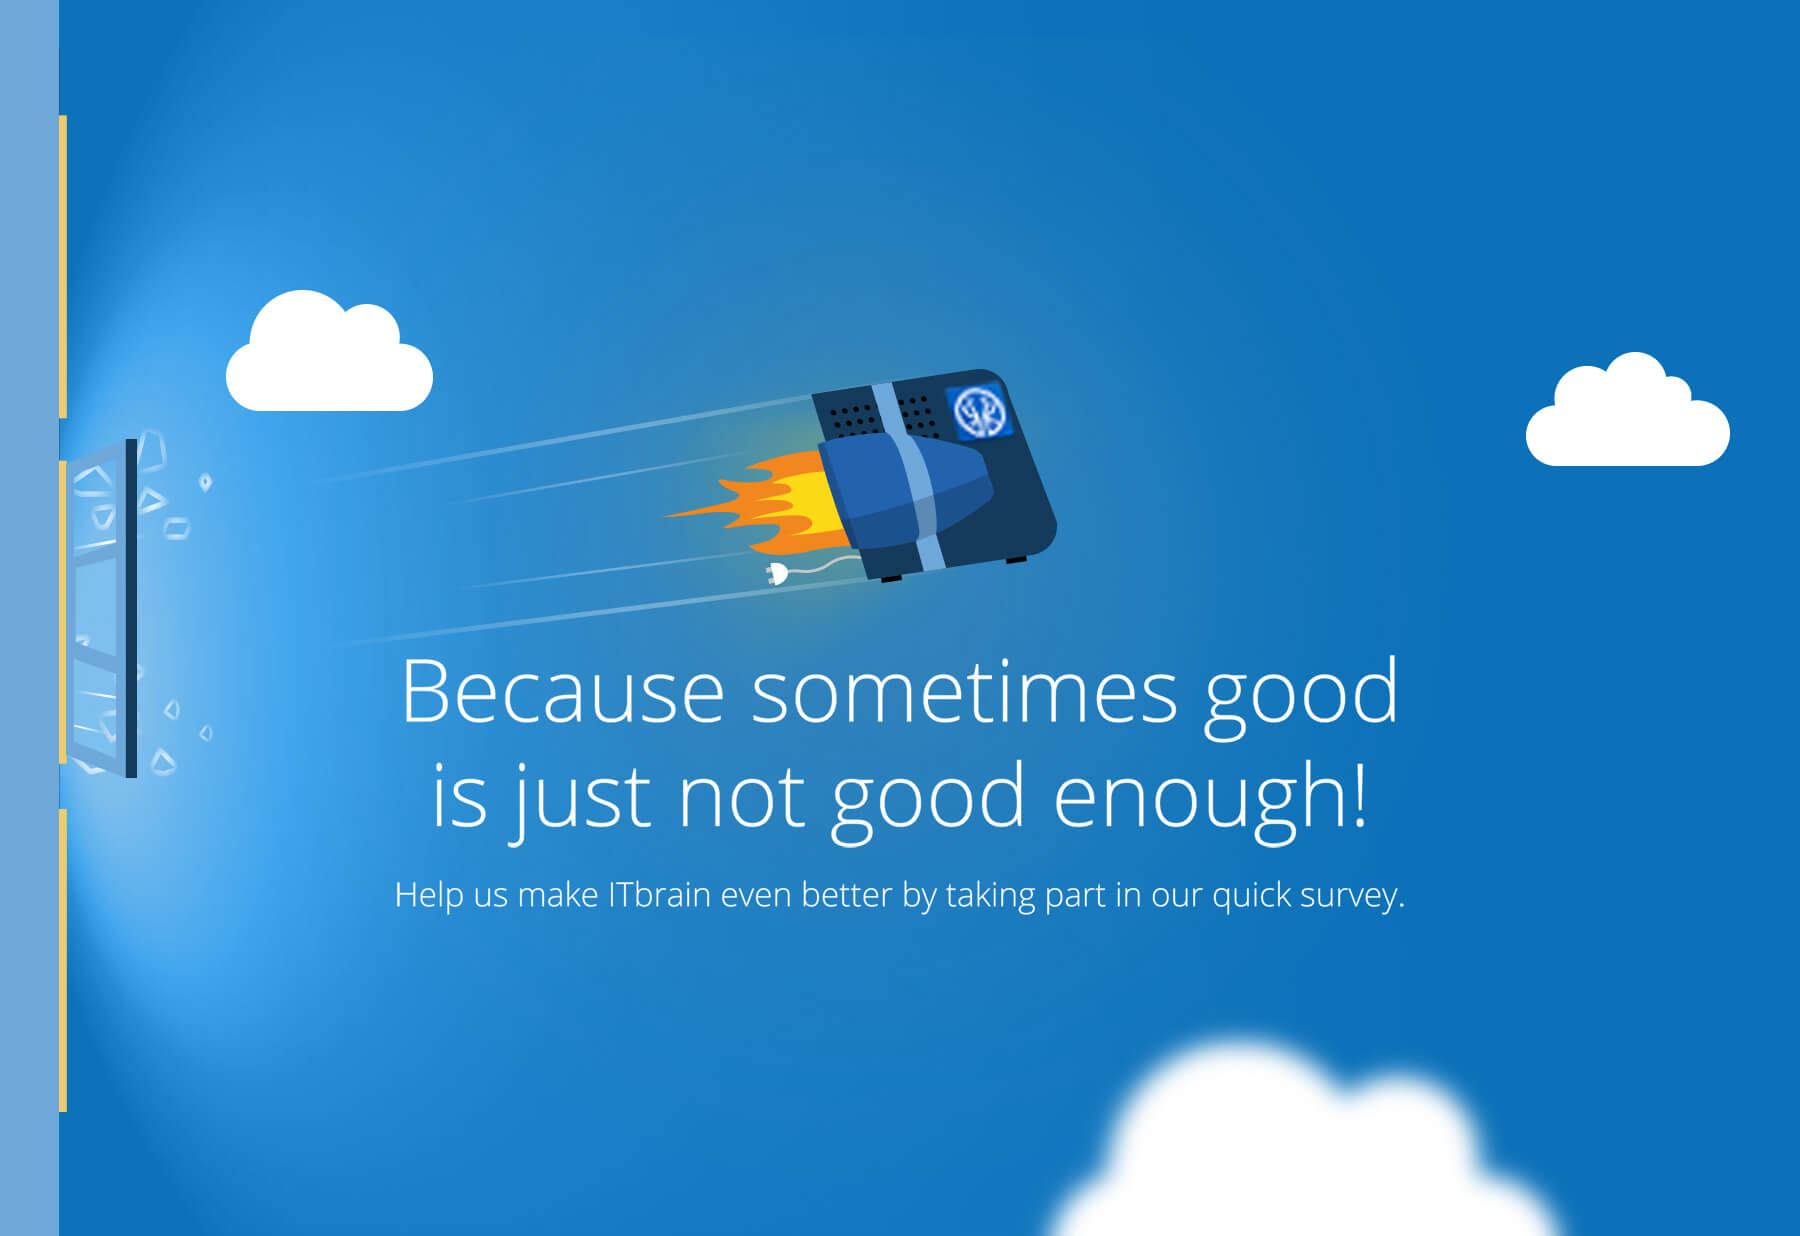 "TeamViewer - Illustration Rakete über weißem Schriftzug ""Because sometimes good is just not good enough!"" auf blauem Himmel"